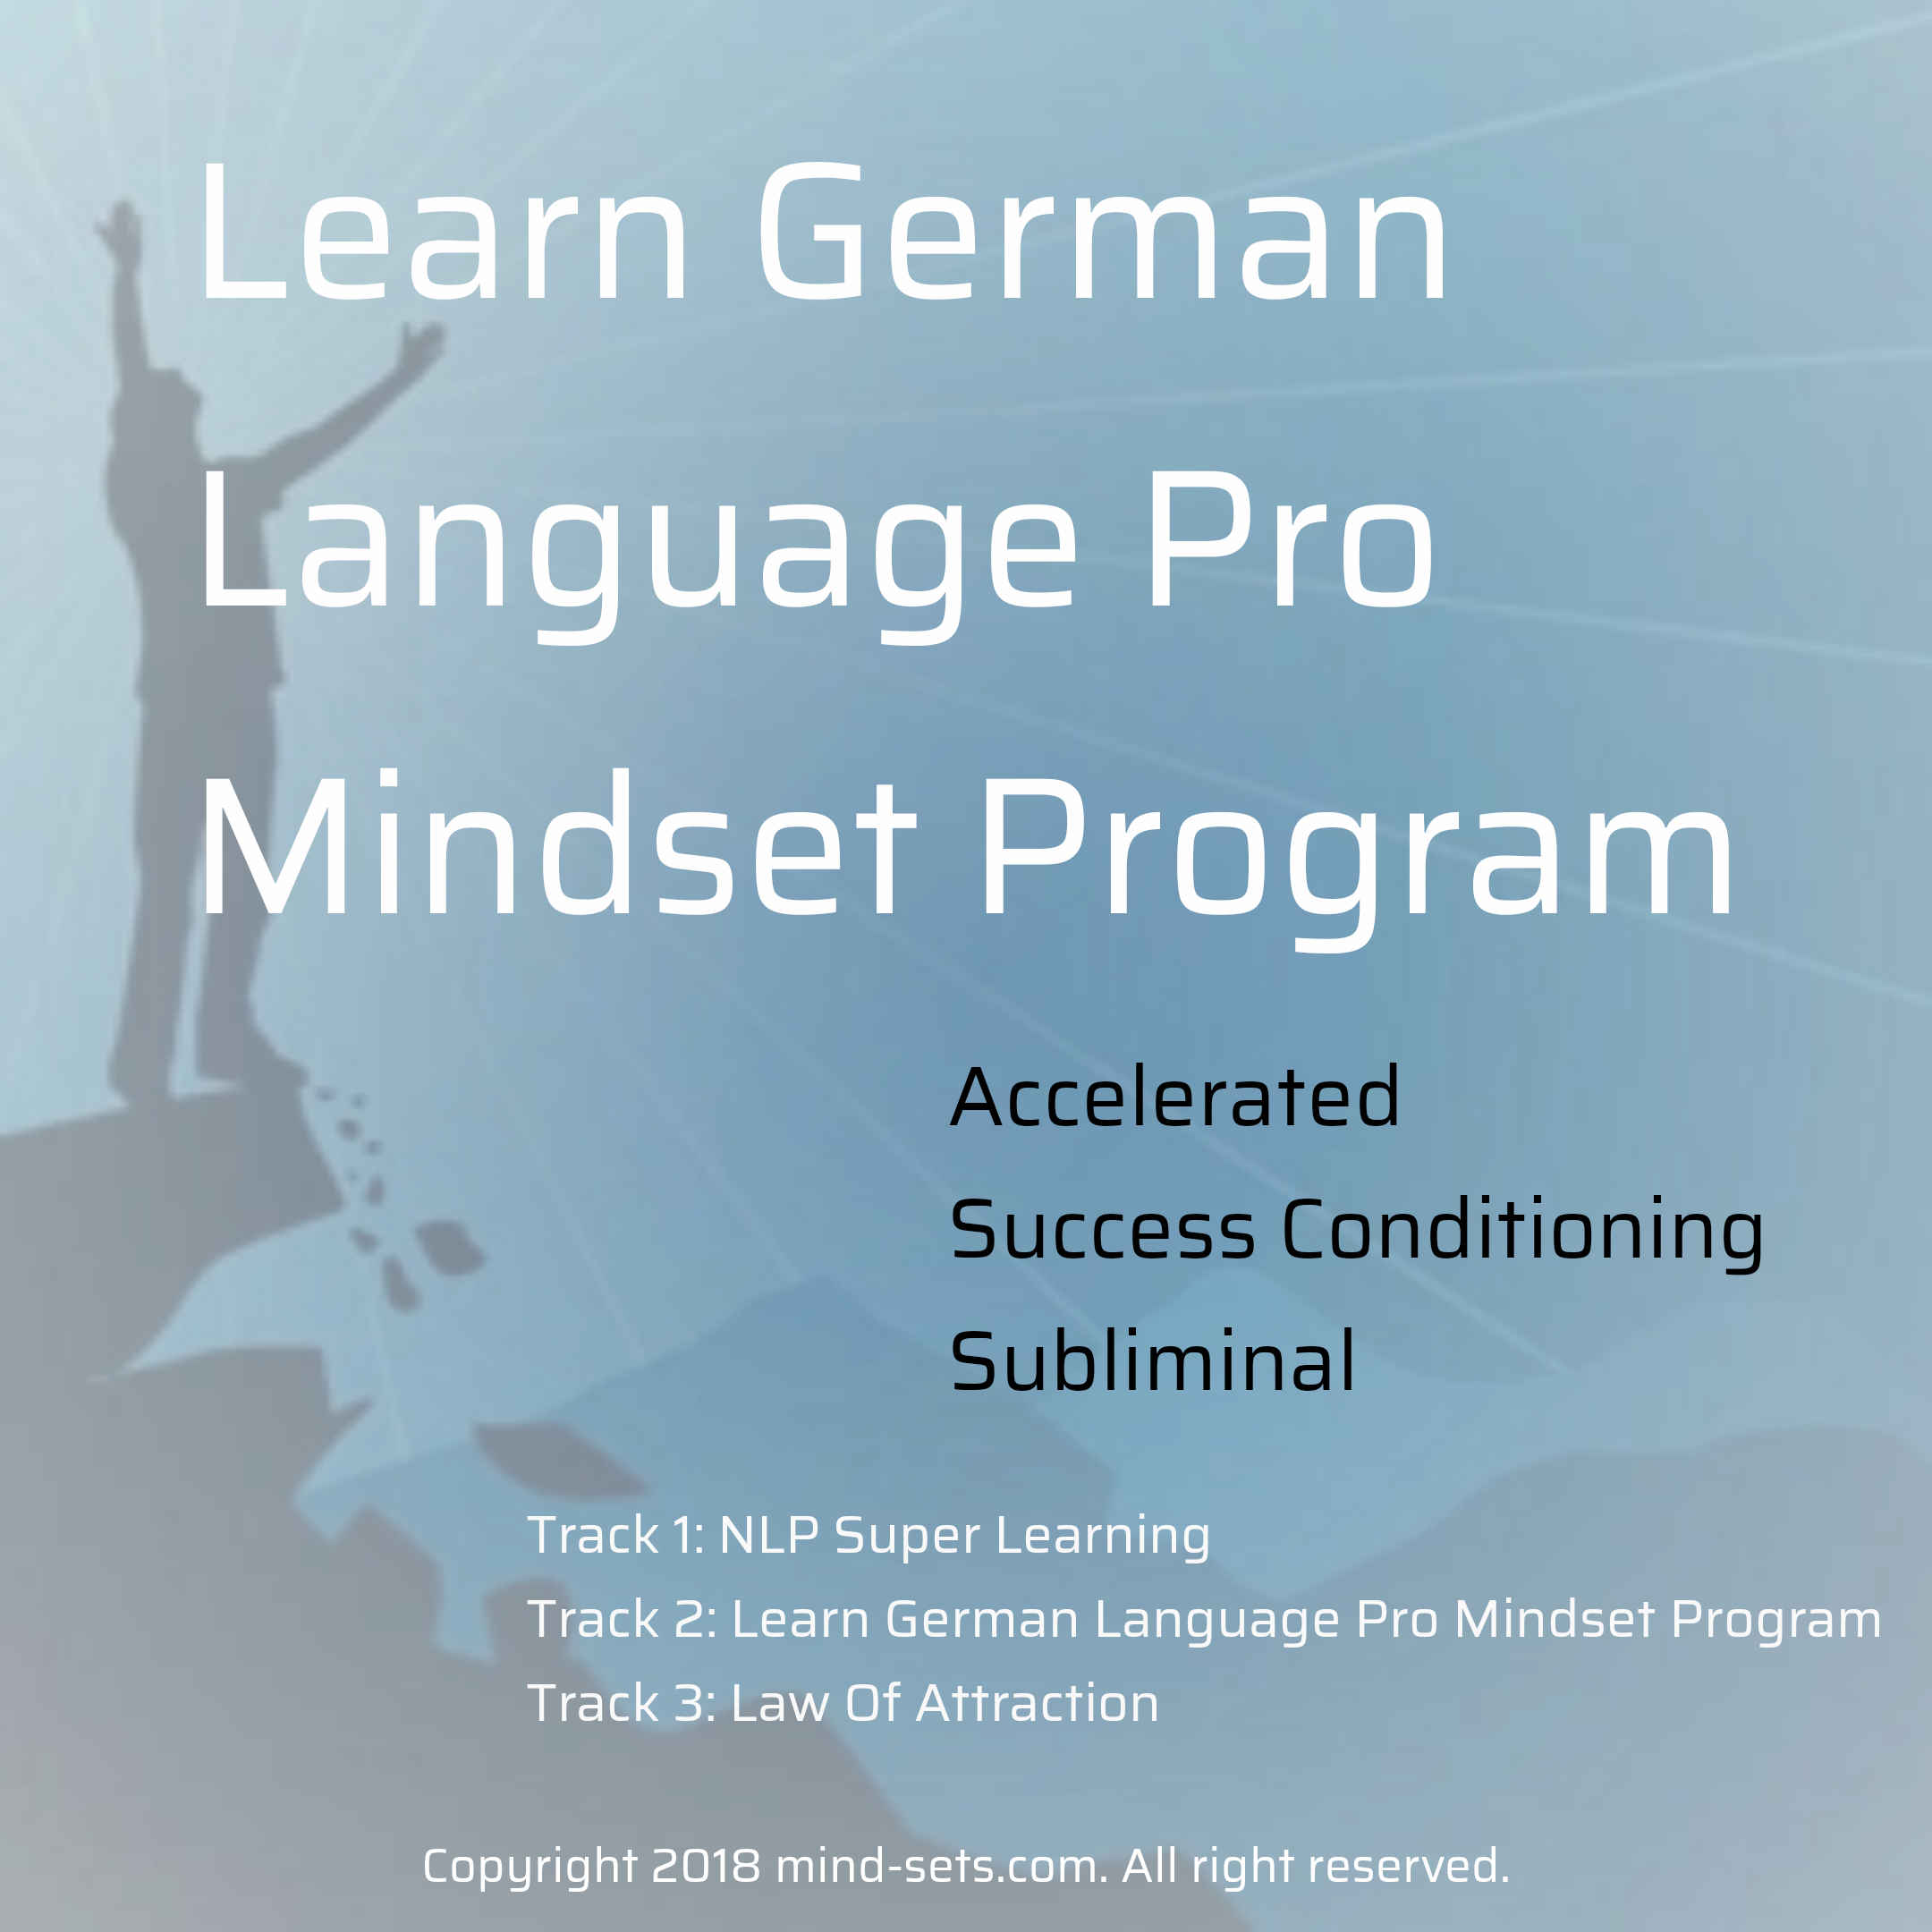 Learn German Language Pro Mindset Program